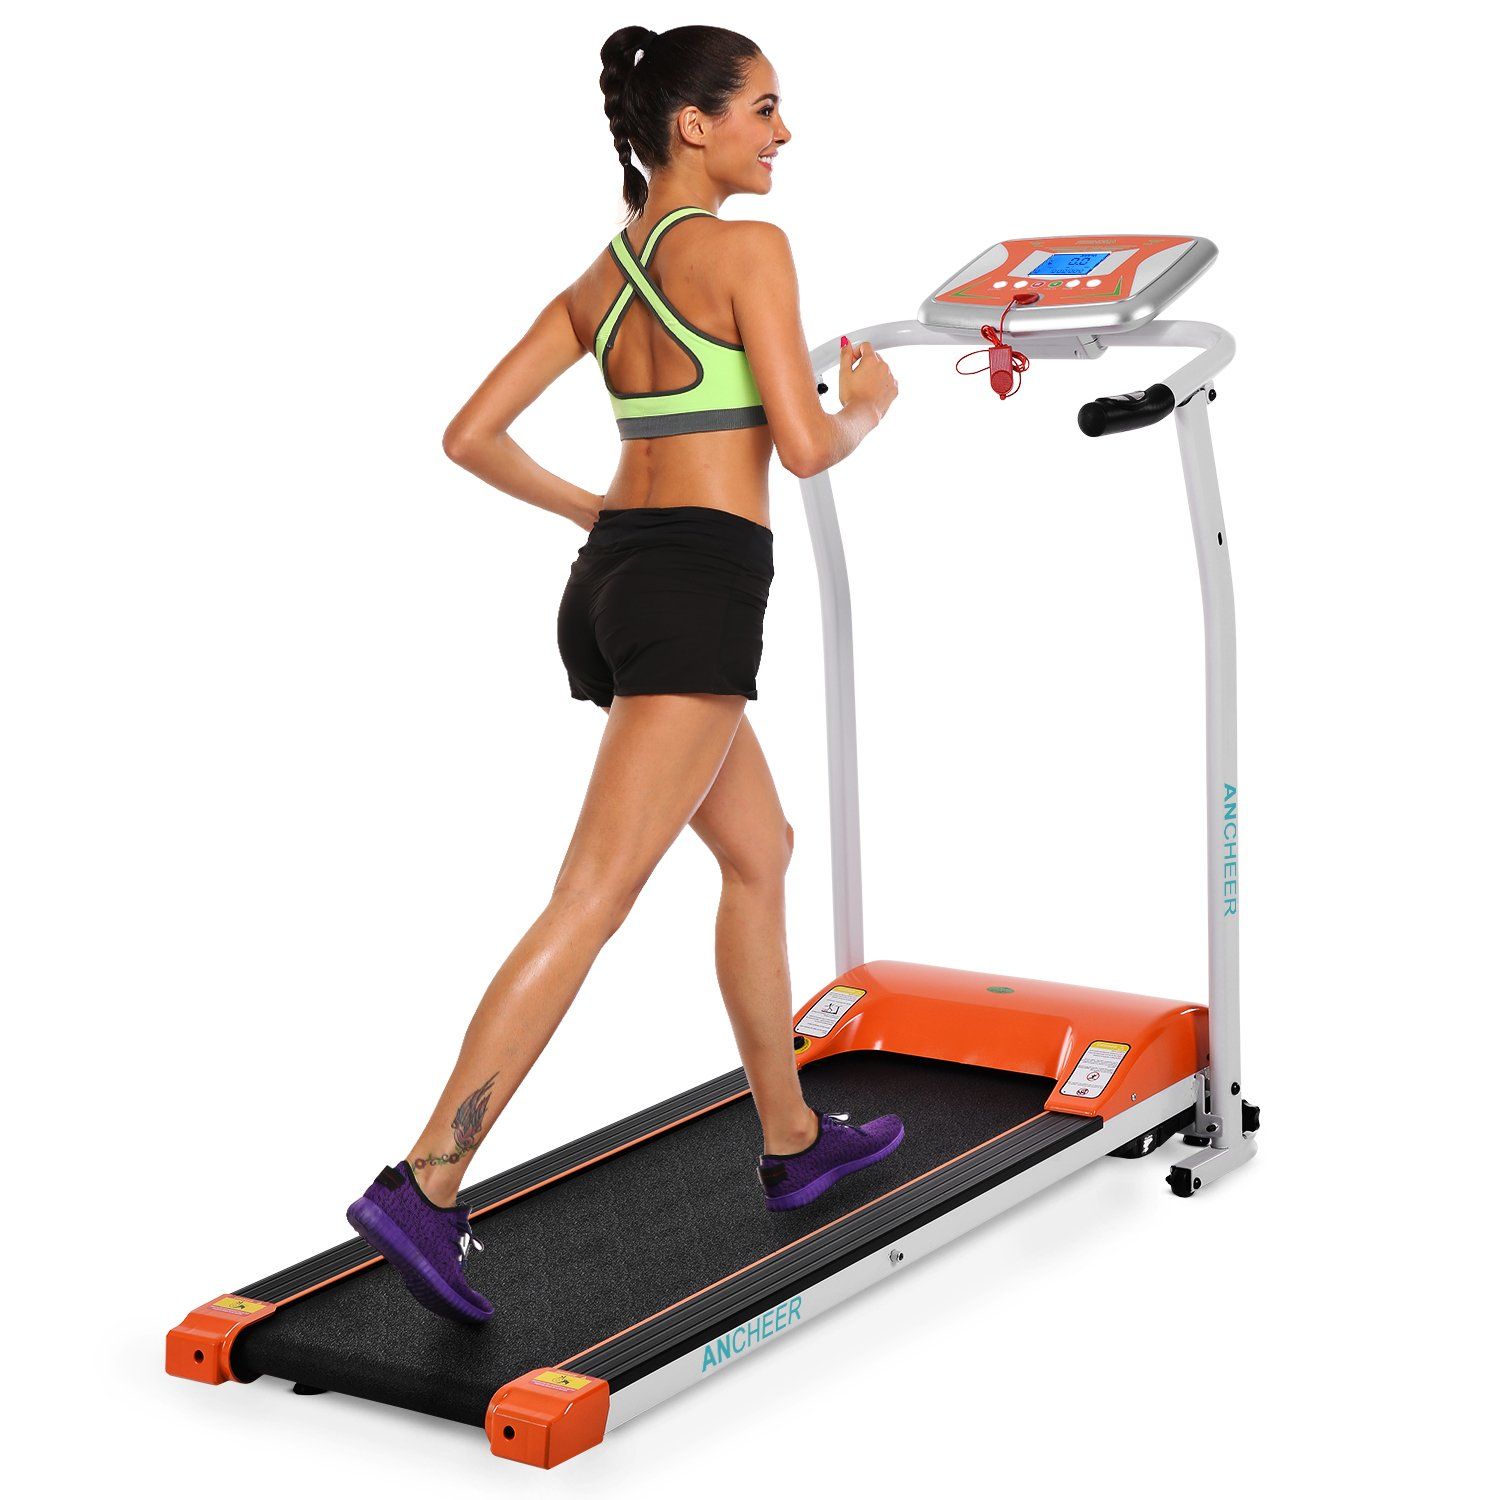 ANCHEER Folding Electric Treadmill, 502 Easy Assembly Motorized Running Machine with Rolling Wheels (Orange Treadmill.)